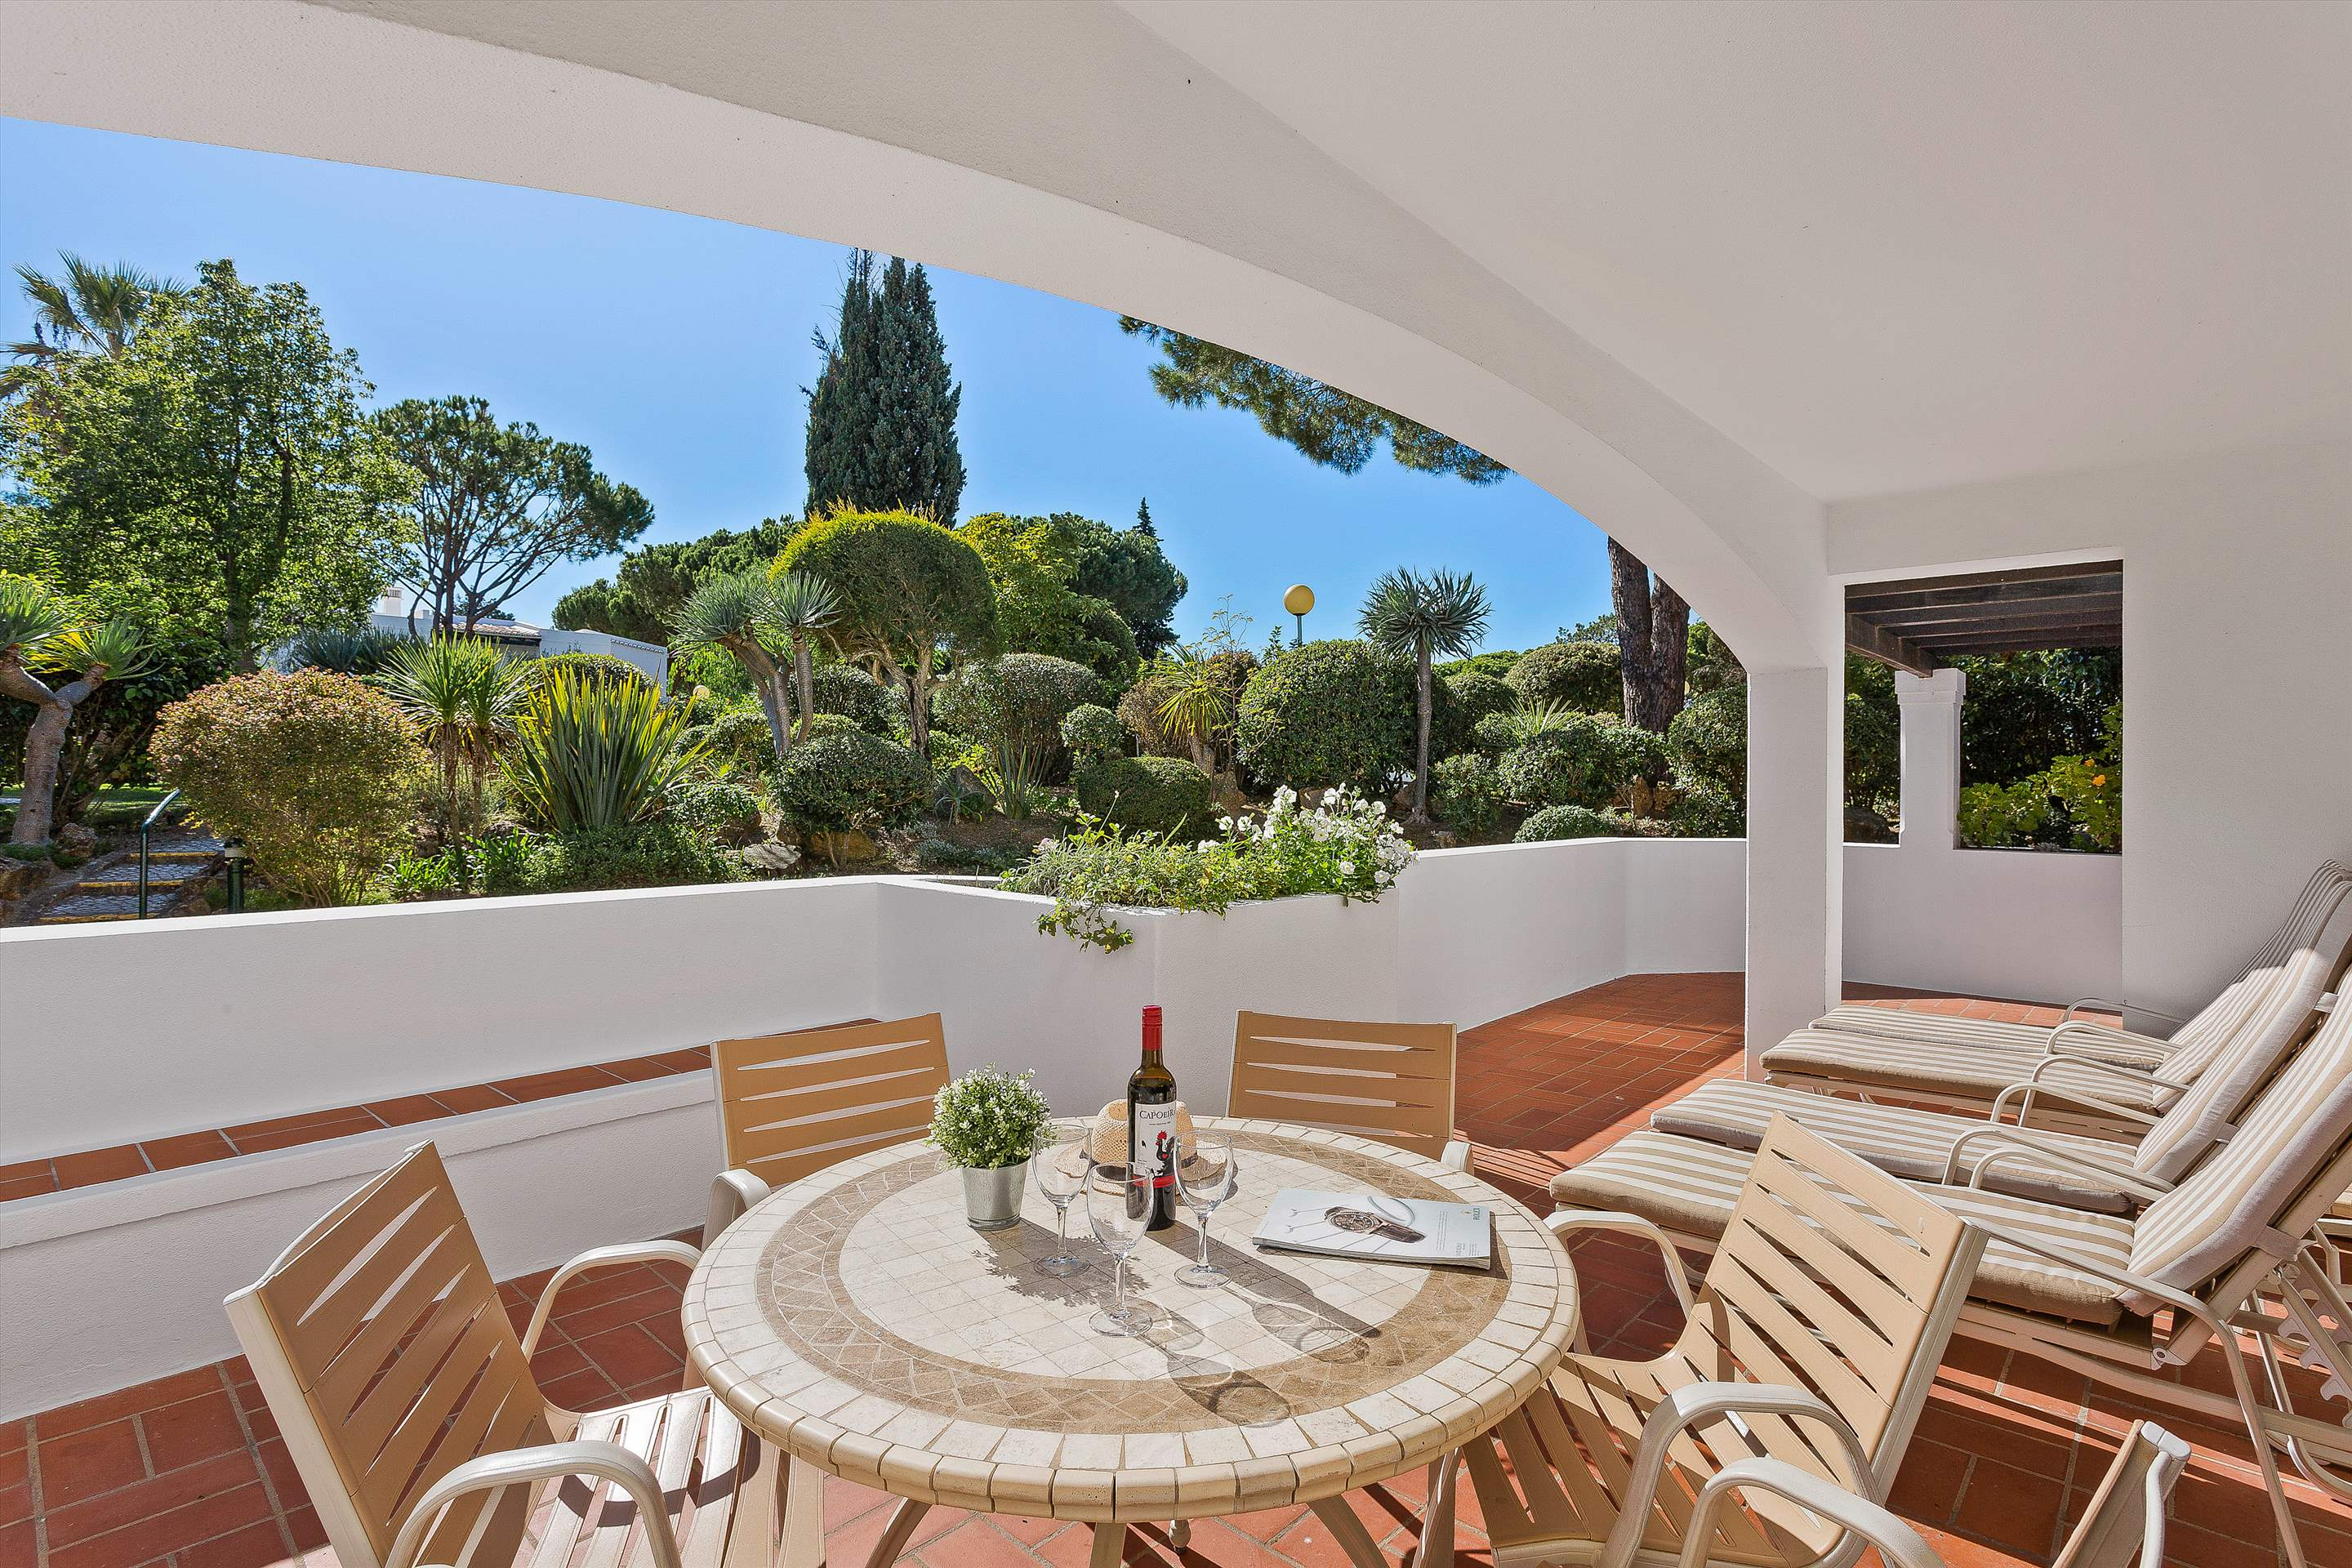 Four Seasons Country Club 2 bed, Superior - Sunday Arrival, 2 bedroom apartment in Four Seasons Country Club, Algarve Photo #2